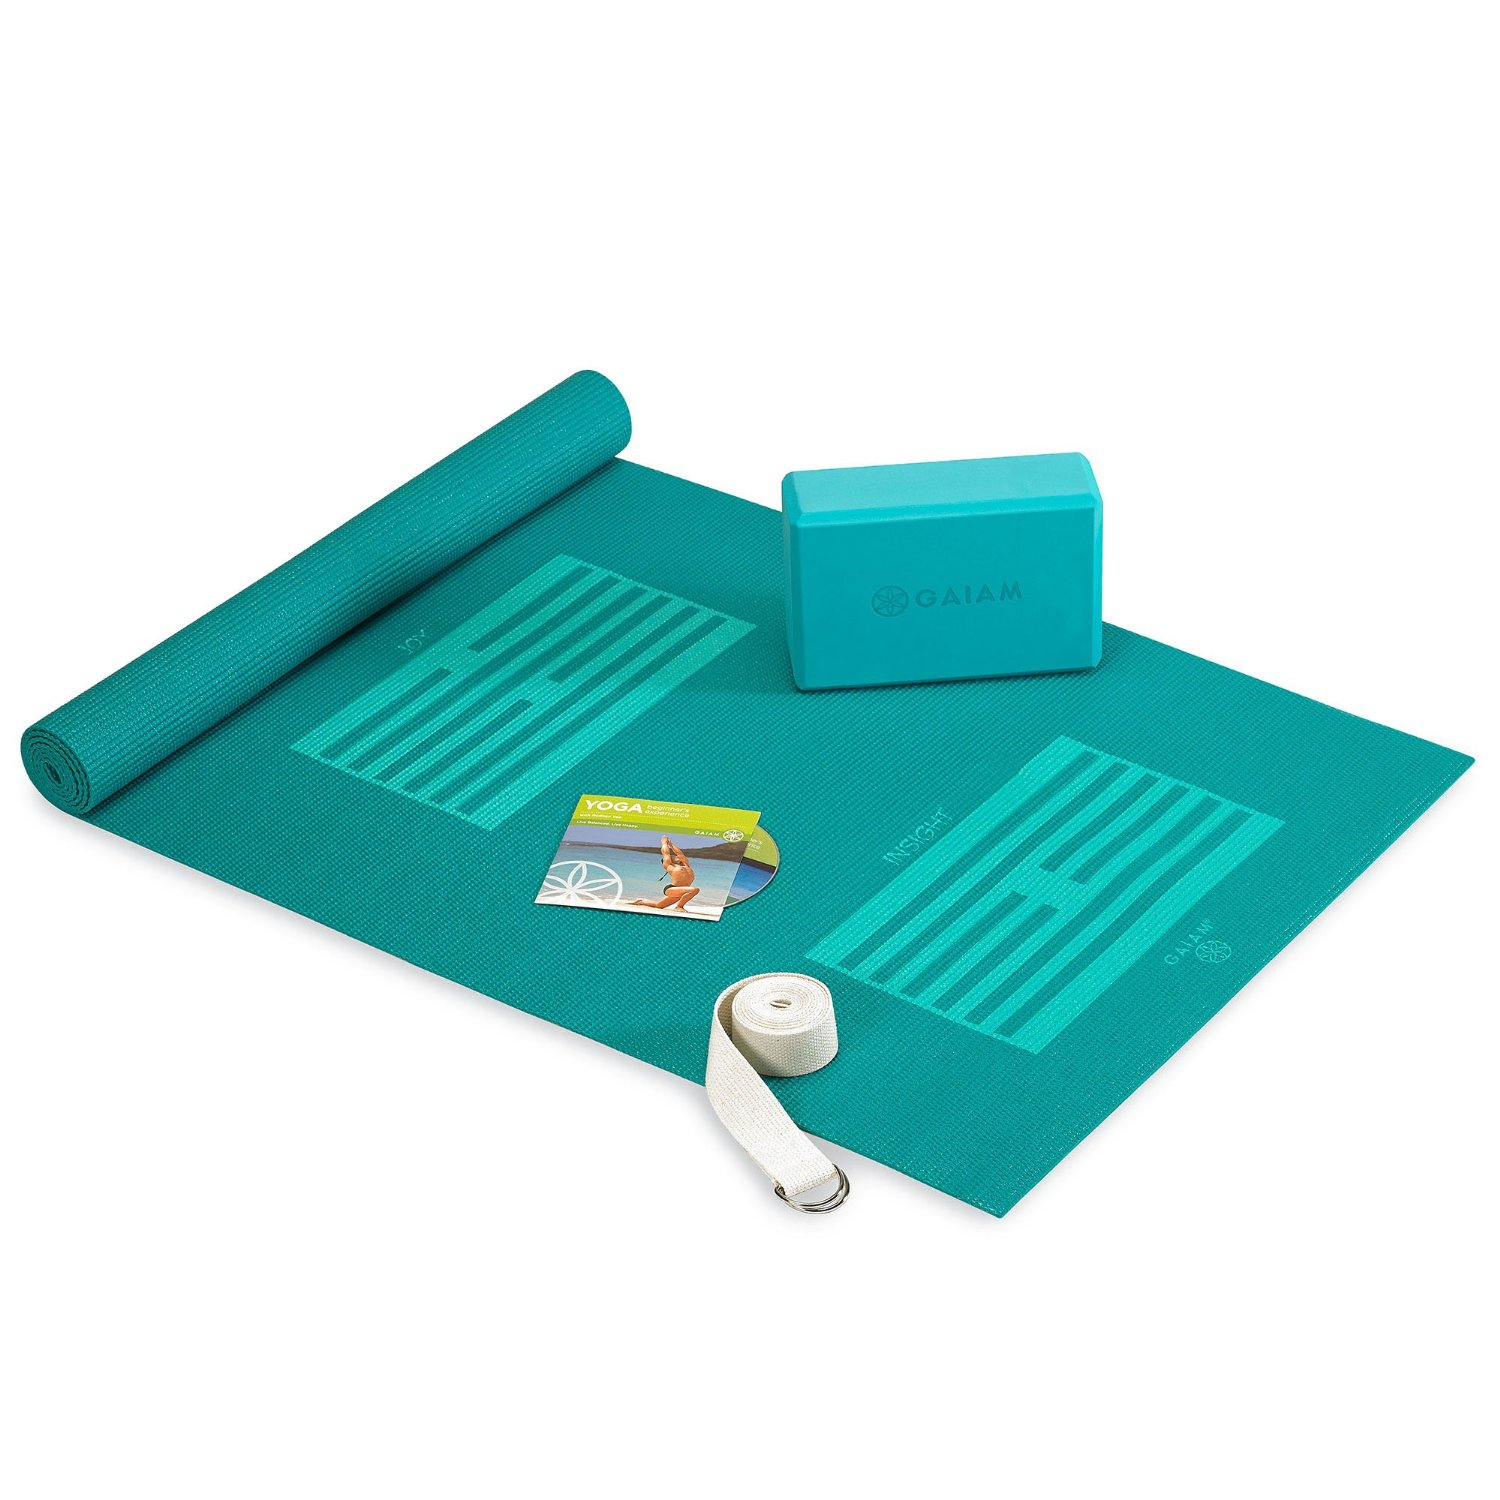 kit de inicio de yoga Gaiam